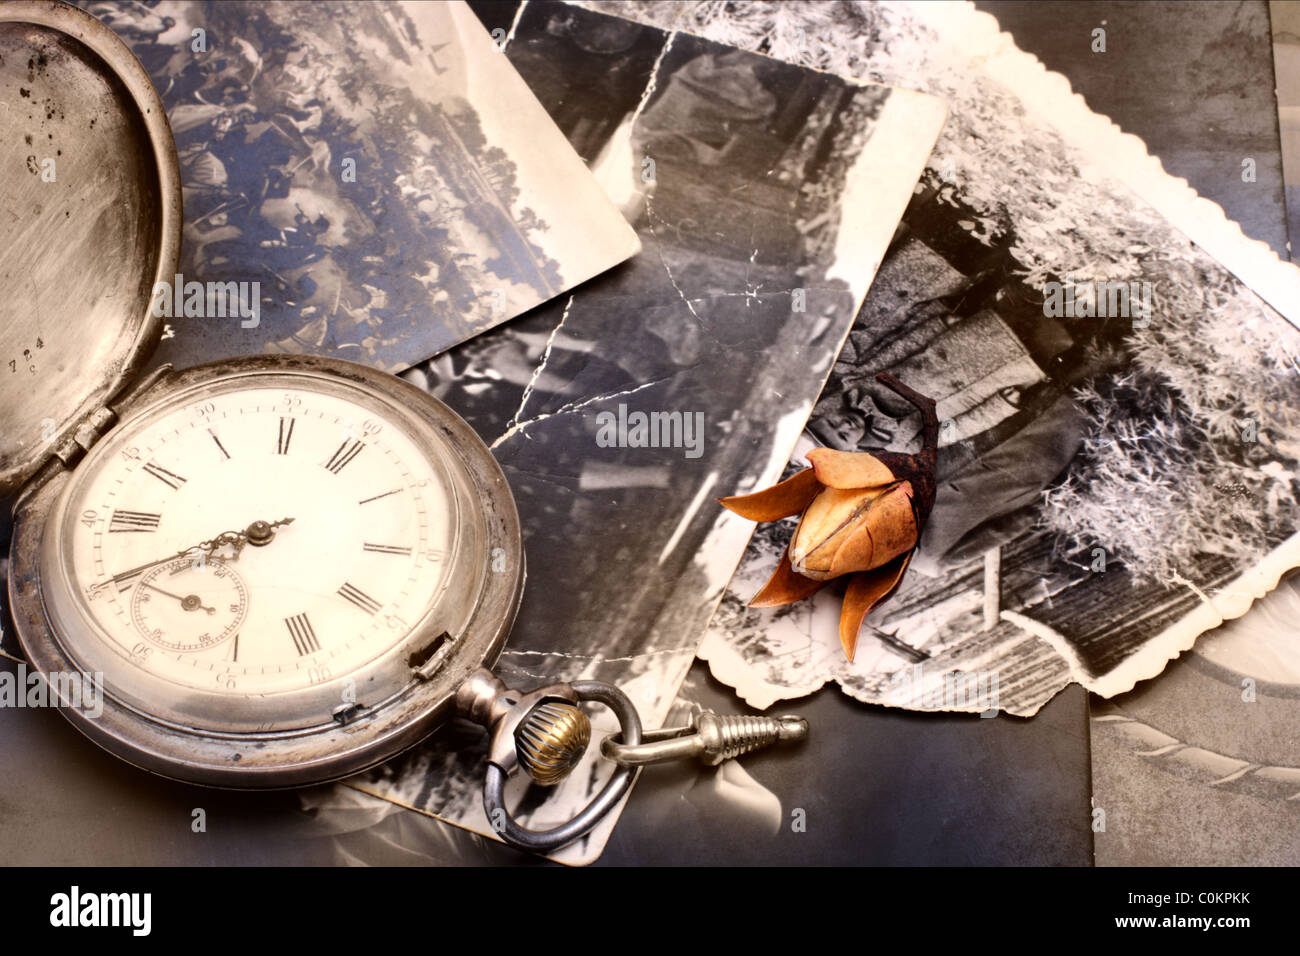 Old pocket watch on the old photos - Stock Image